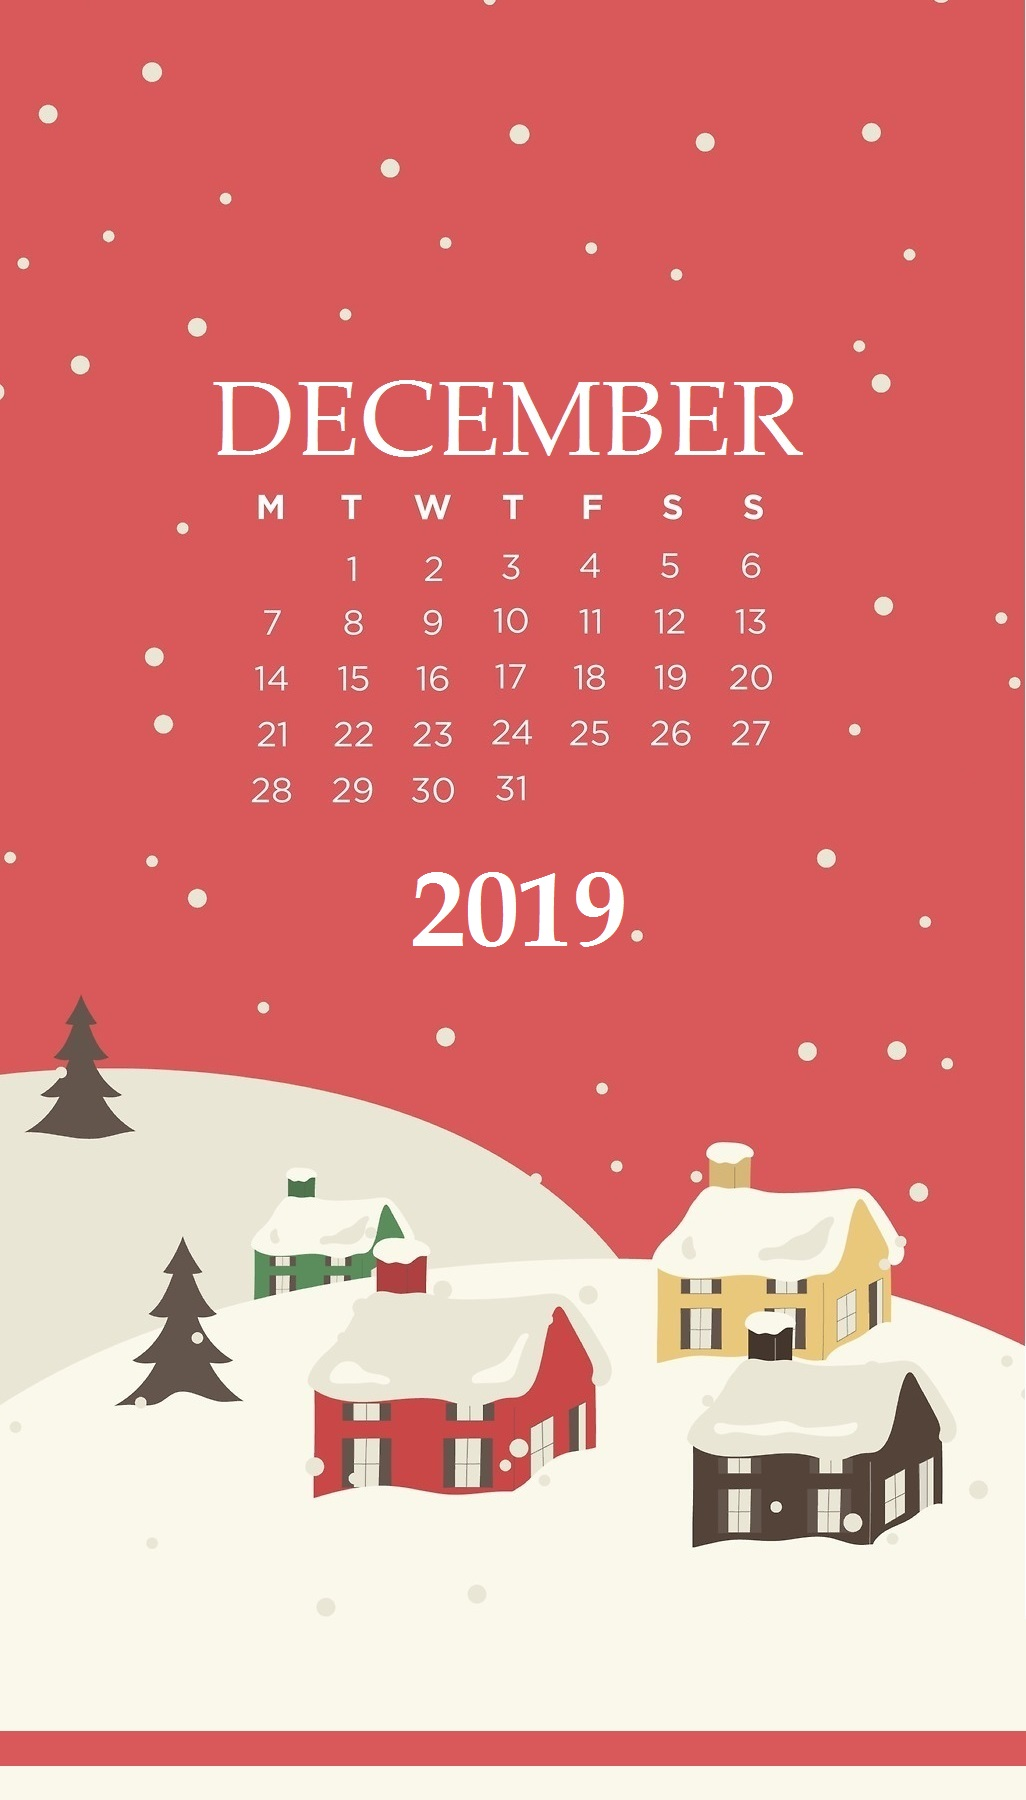 December 2019 Smartphone Wallpaper